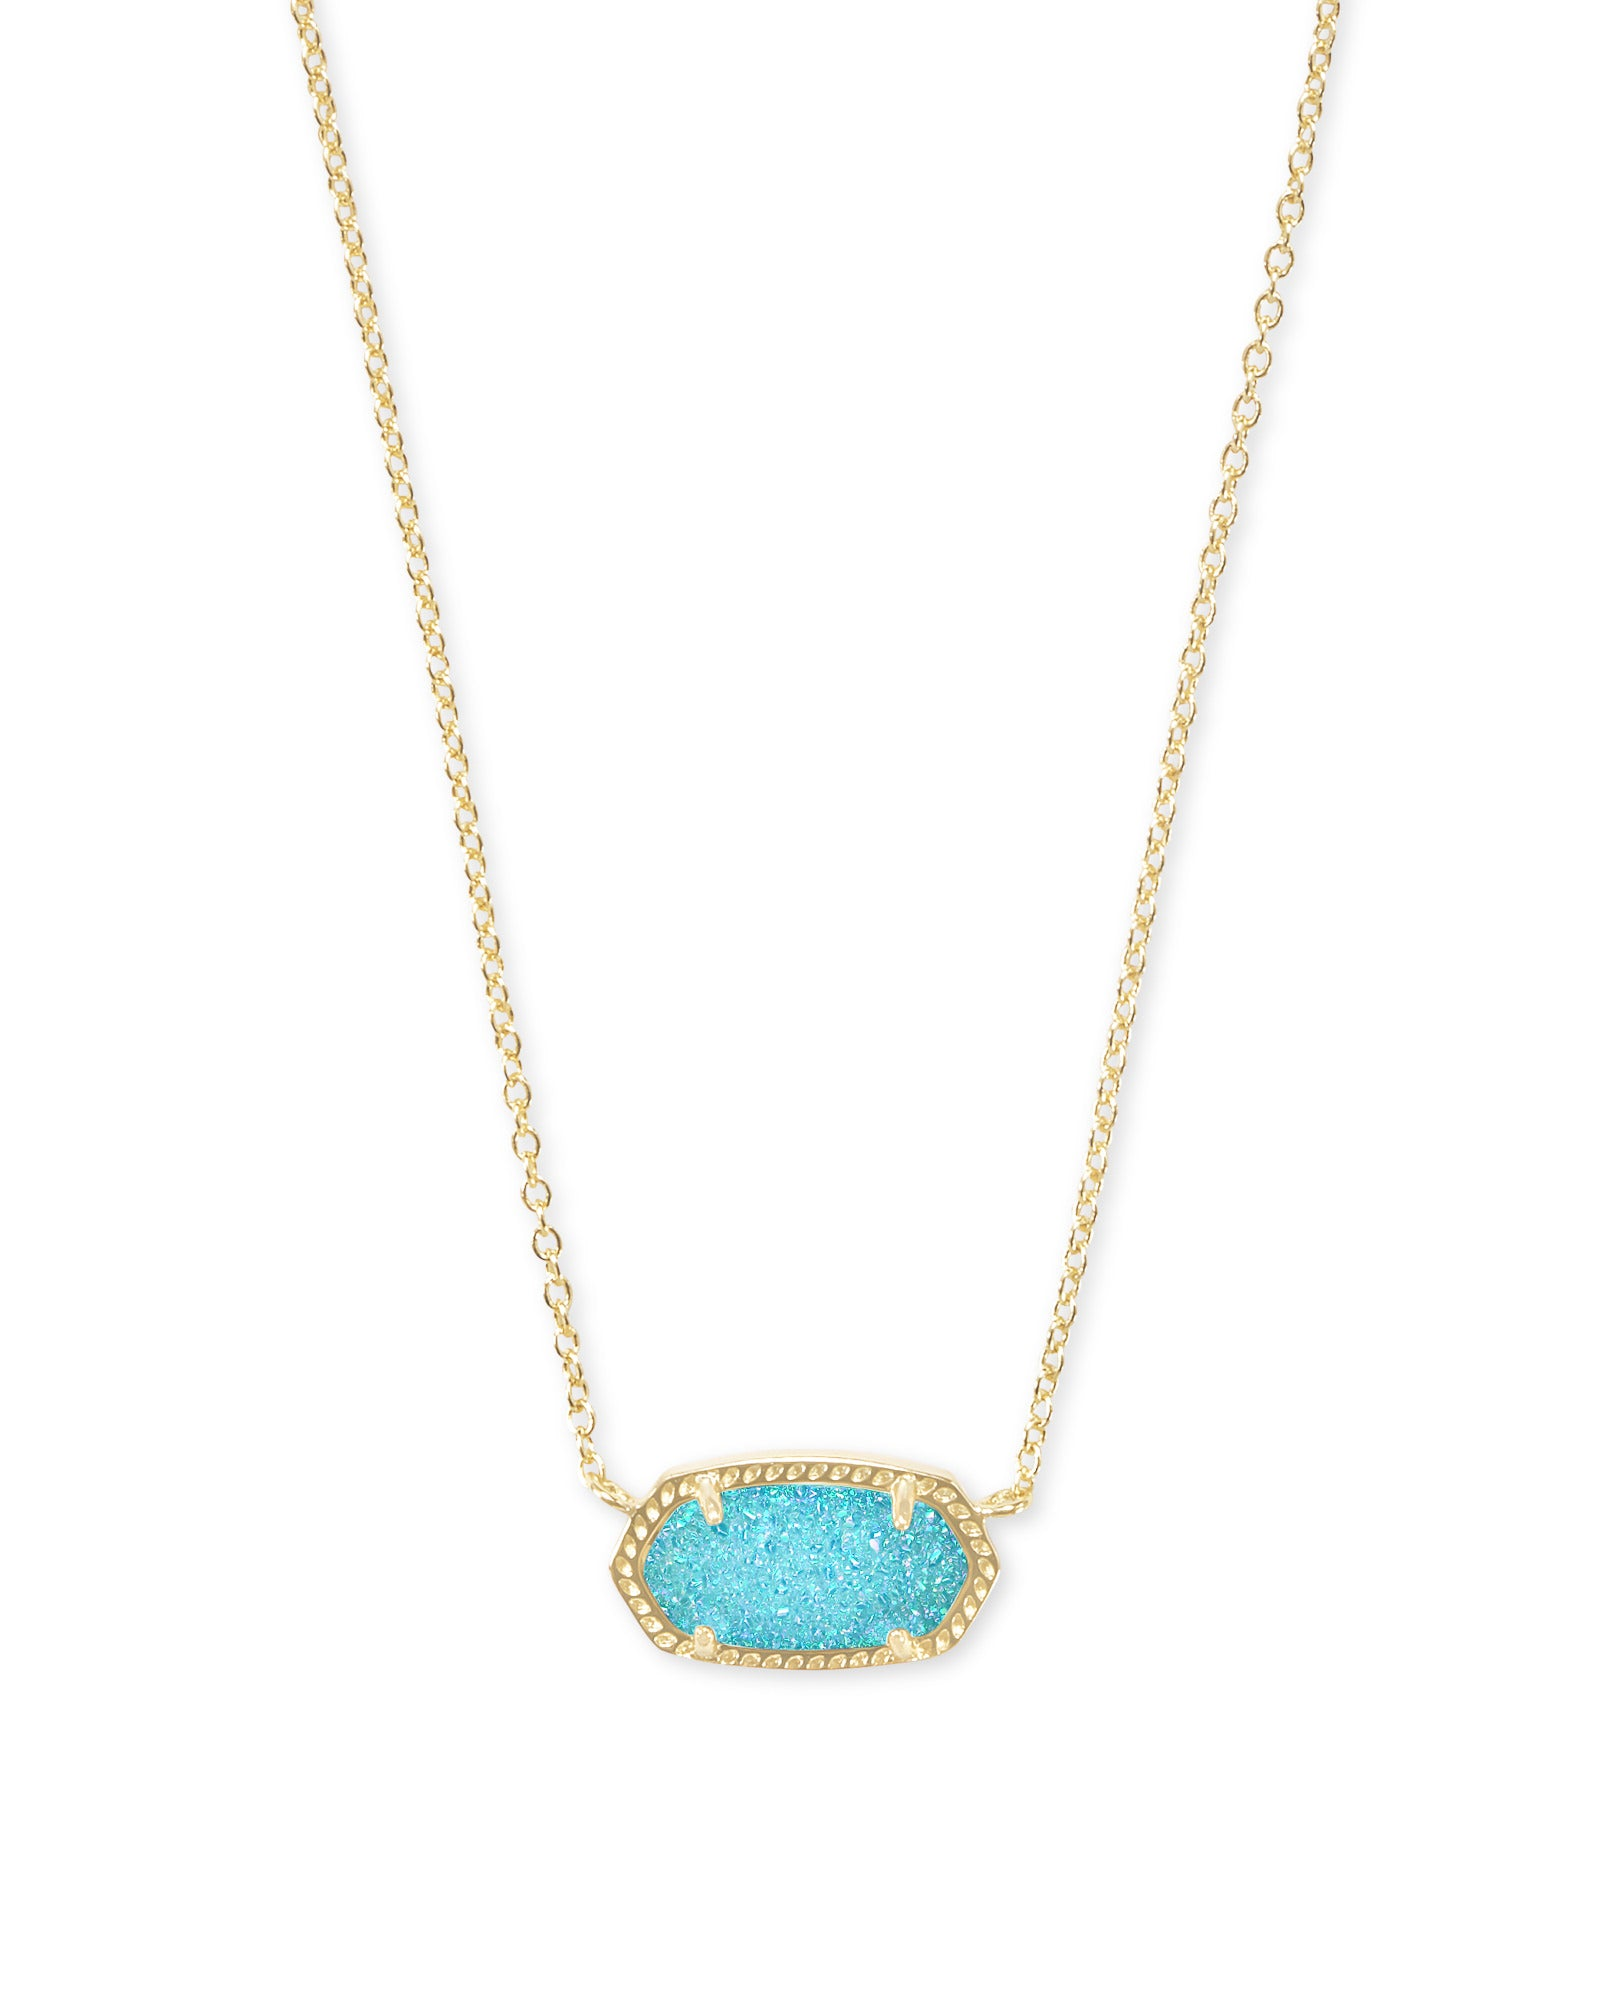 Elisa Gold Pendant Necklace in Aqua Drusy